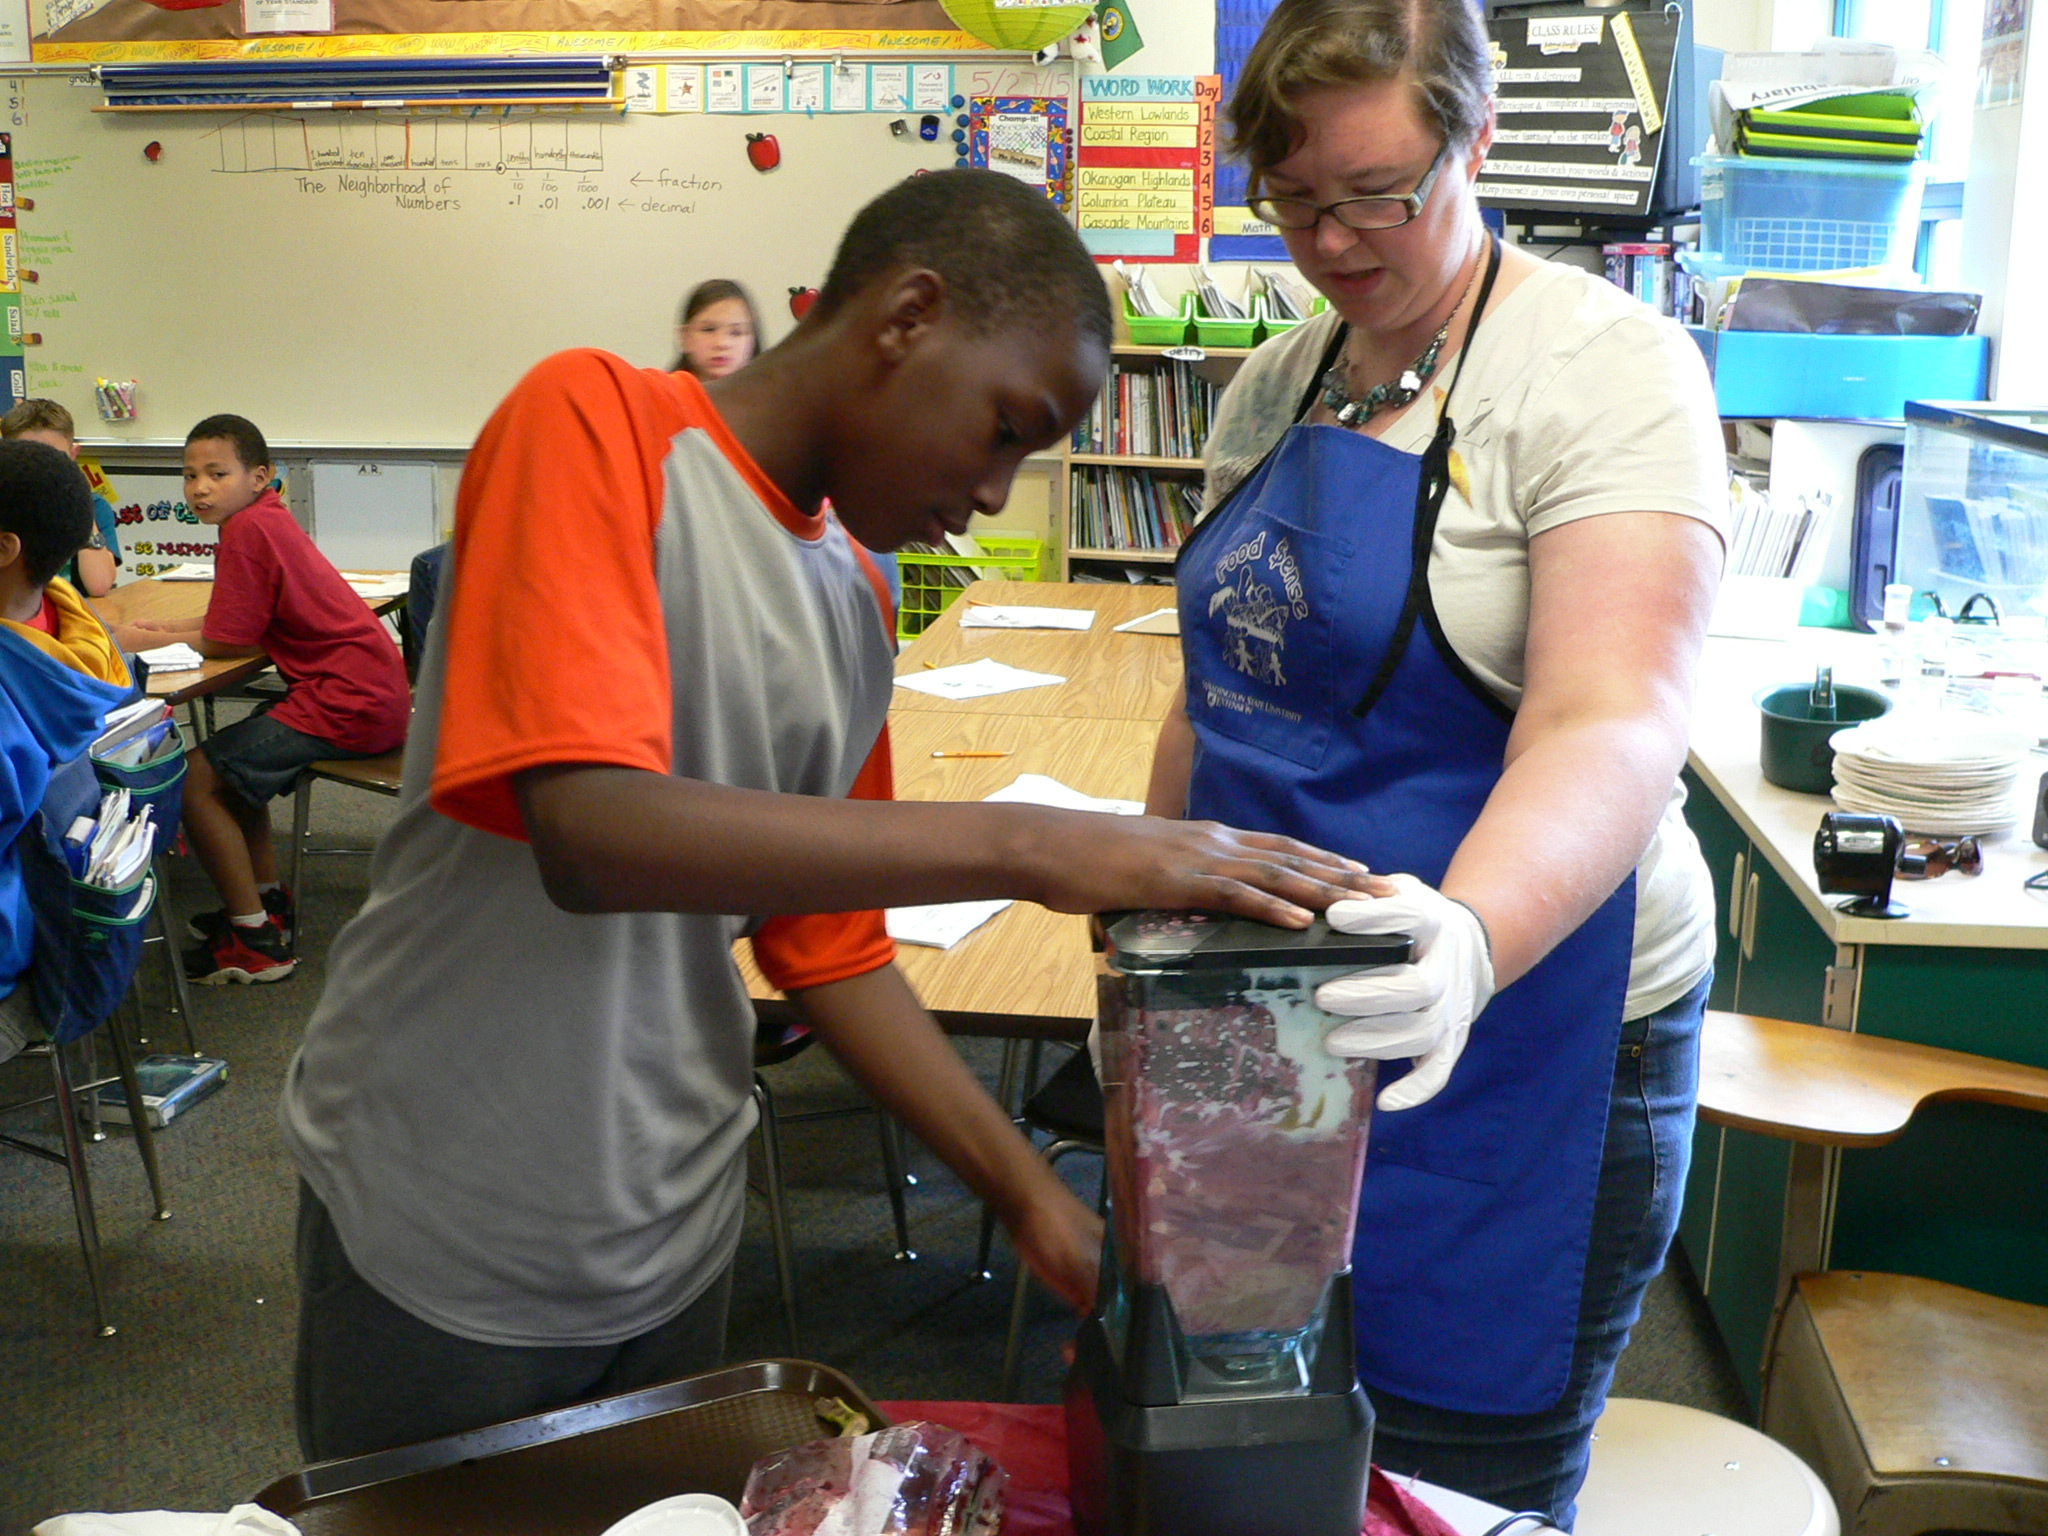 a European (white) nutrition educator blending a purple smoothie with an African-American (black) male youth